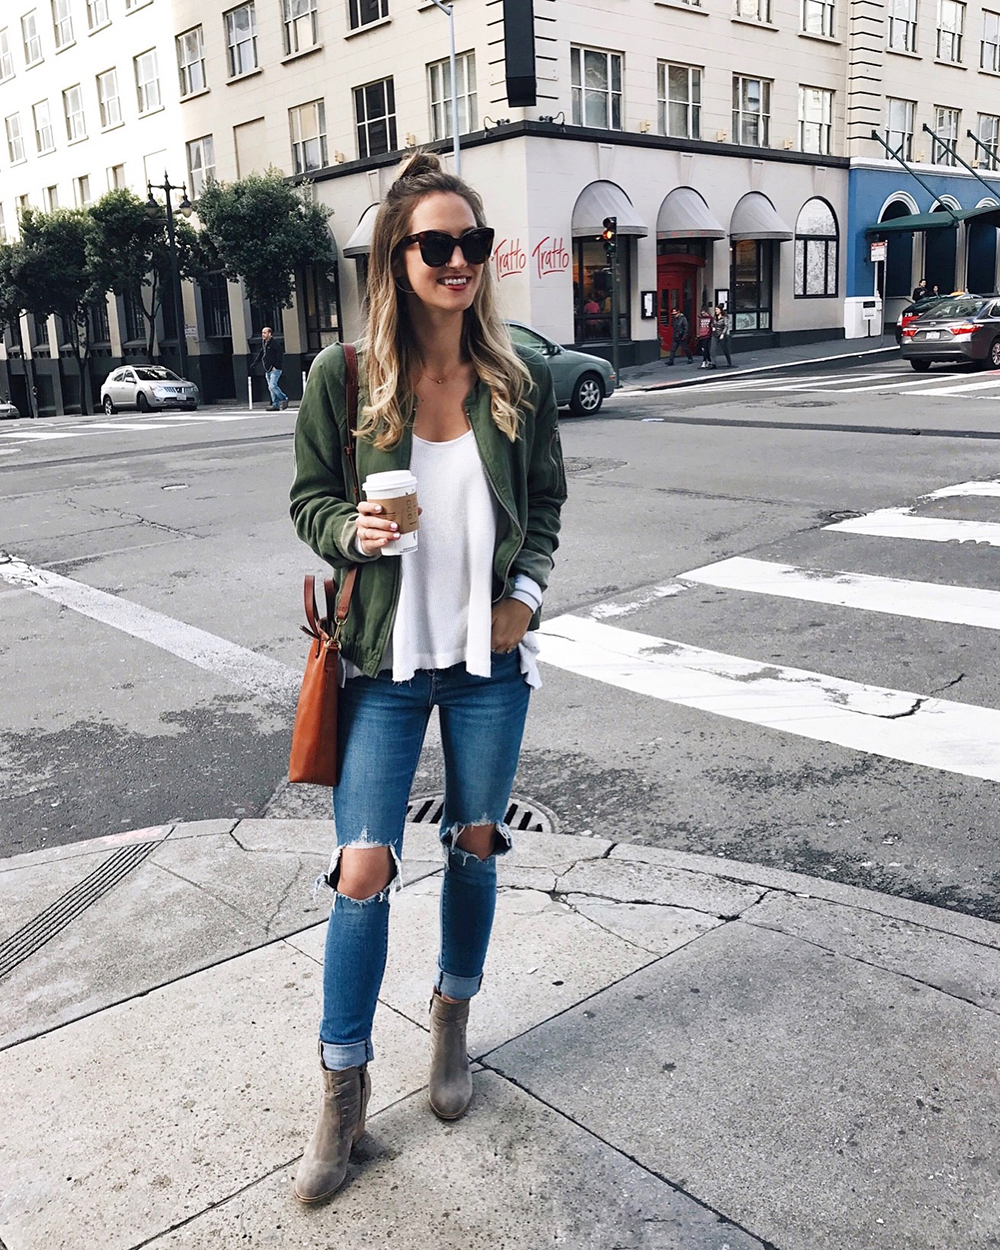 livvyland-blog-olivia-watson-instagram-roundup-livvylandblog-cozy-chic-boho-outfit-idea-san-fransisco-downtown